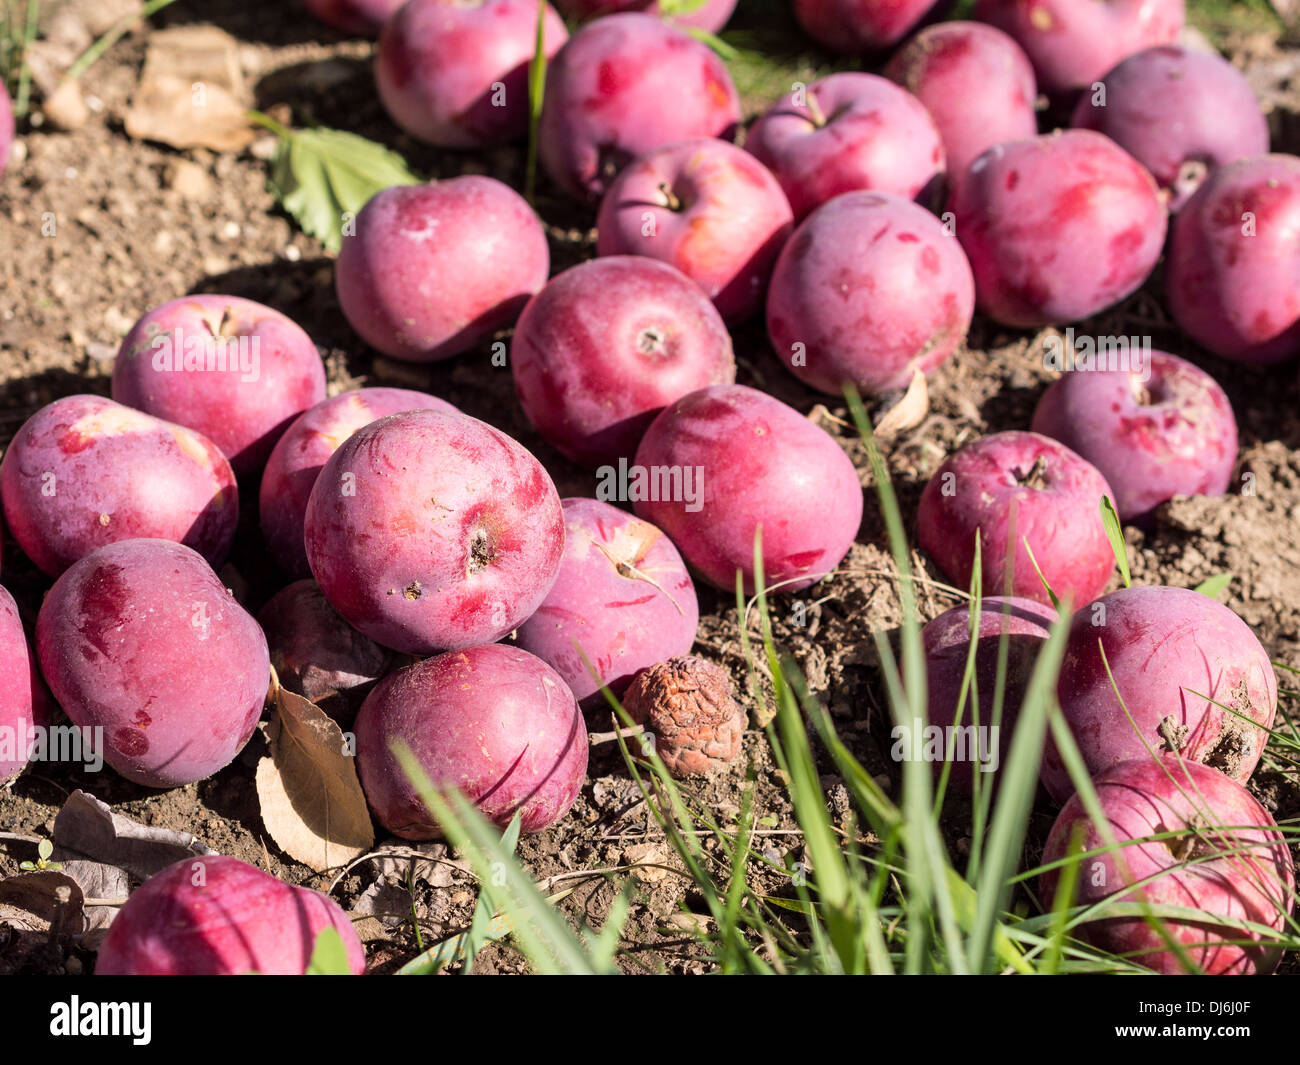 Windfall apples littering the ground. Apples shaken to the ground after a windy day. Good for cider. - Stock Image